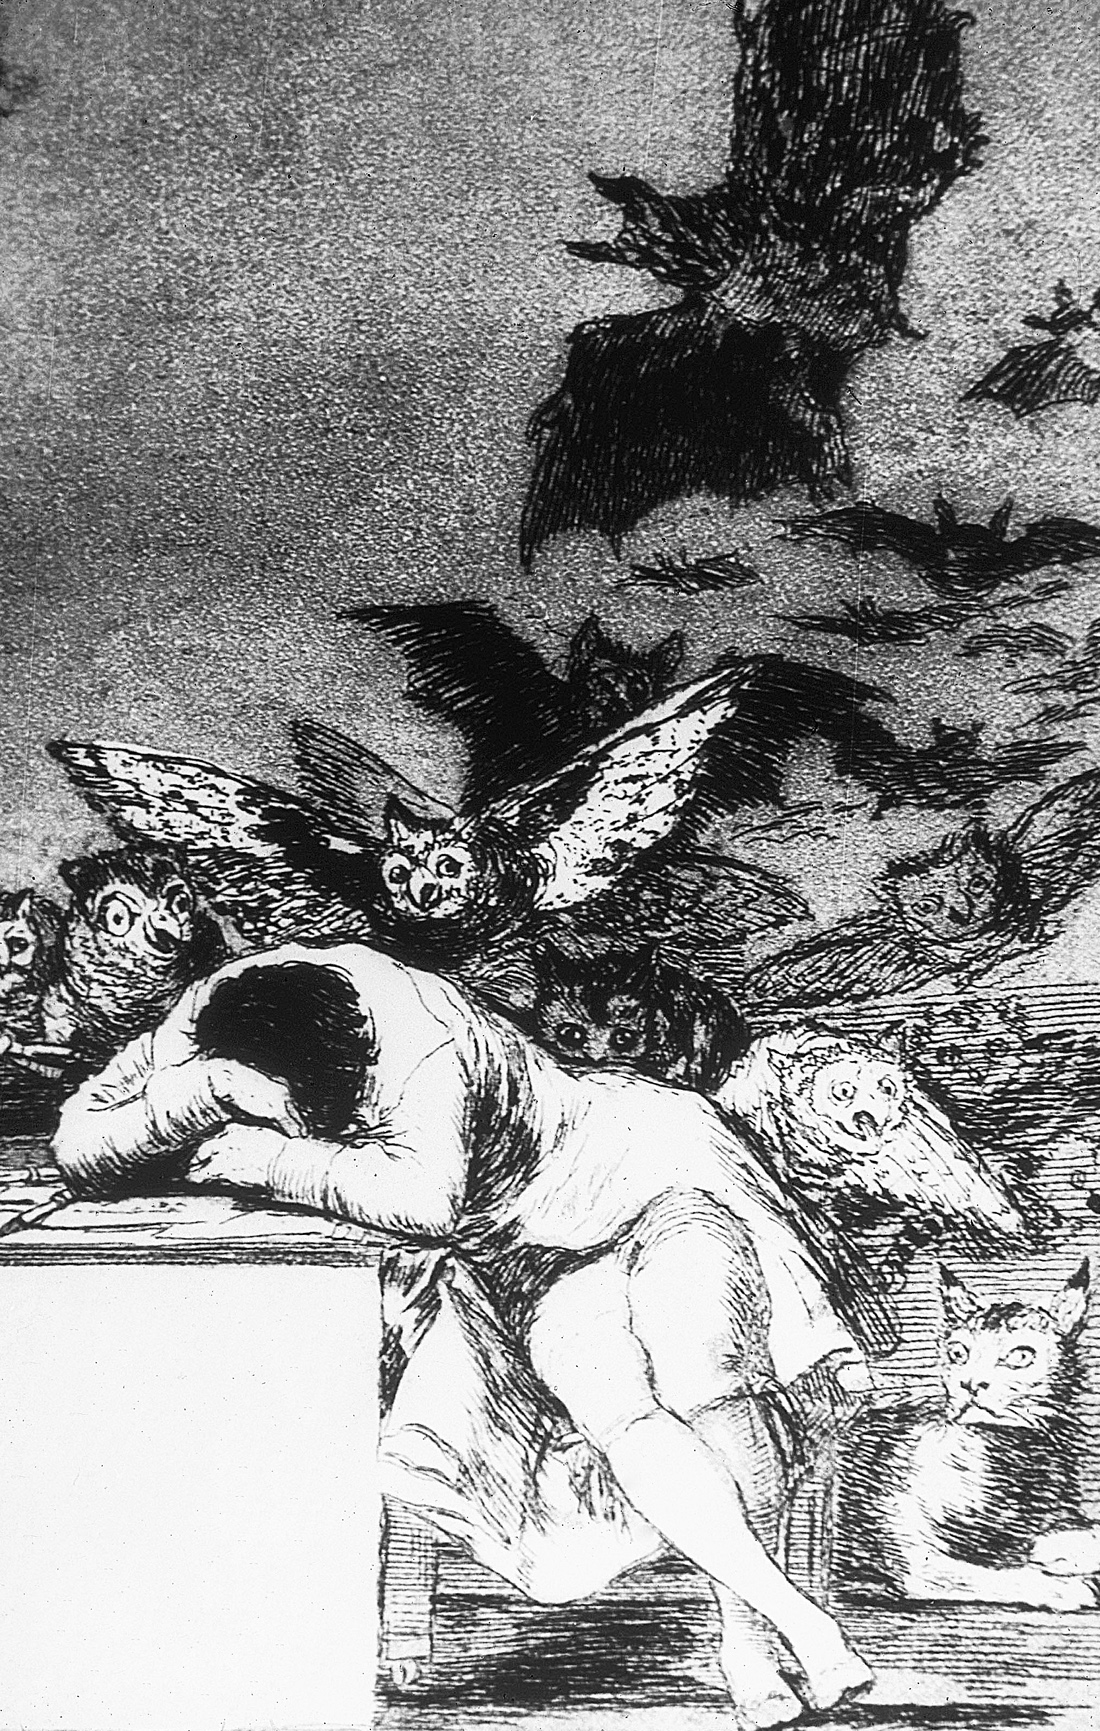 The Sleep of Reason Produces Monsters, by Francisco de Goya y Lucientes, c. 1797.